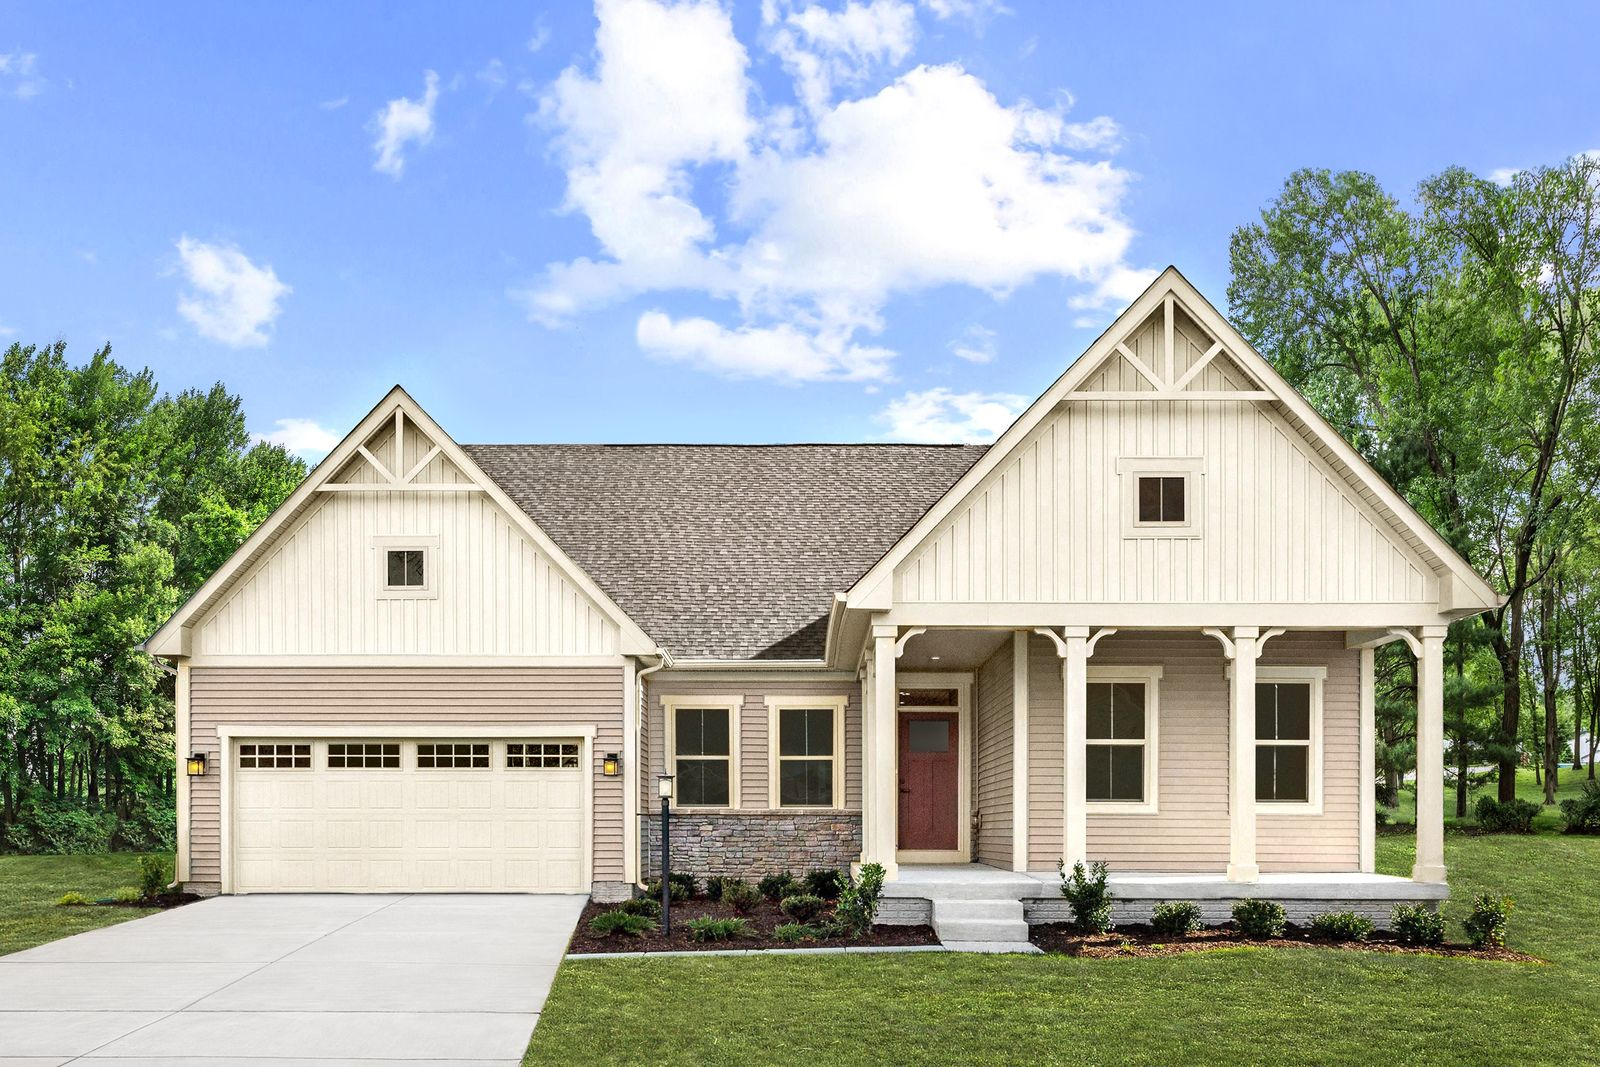 JOIN THE MALLARDS EDGE VIP LIST TODAY!:All ranch golf course community with lawn/snow care provided off Rt 82 near Strongsville! Enjoy luxury finishes, pond, fairway & open views.Click here to join the VIP List!